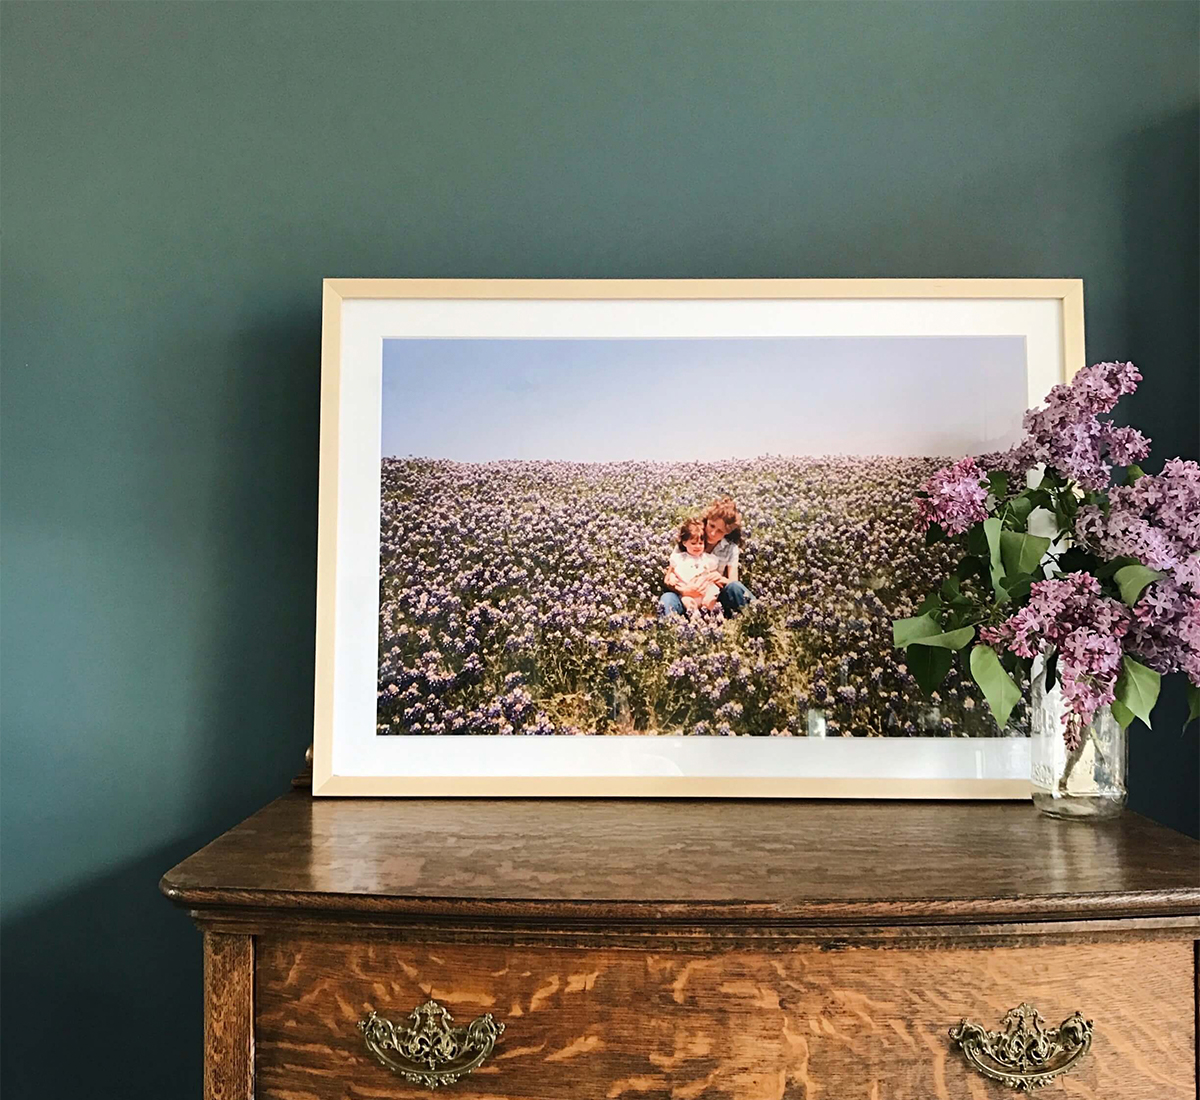 Gallery frame with vintage mother and daughter photo resting on dresser